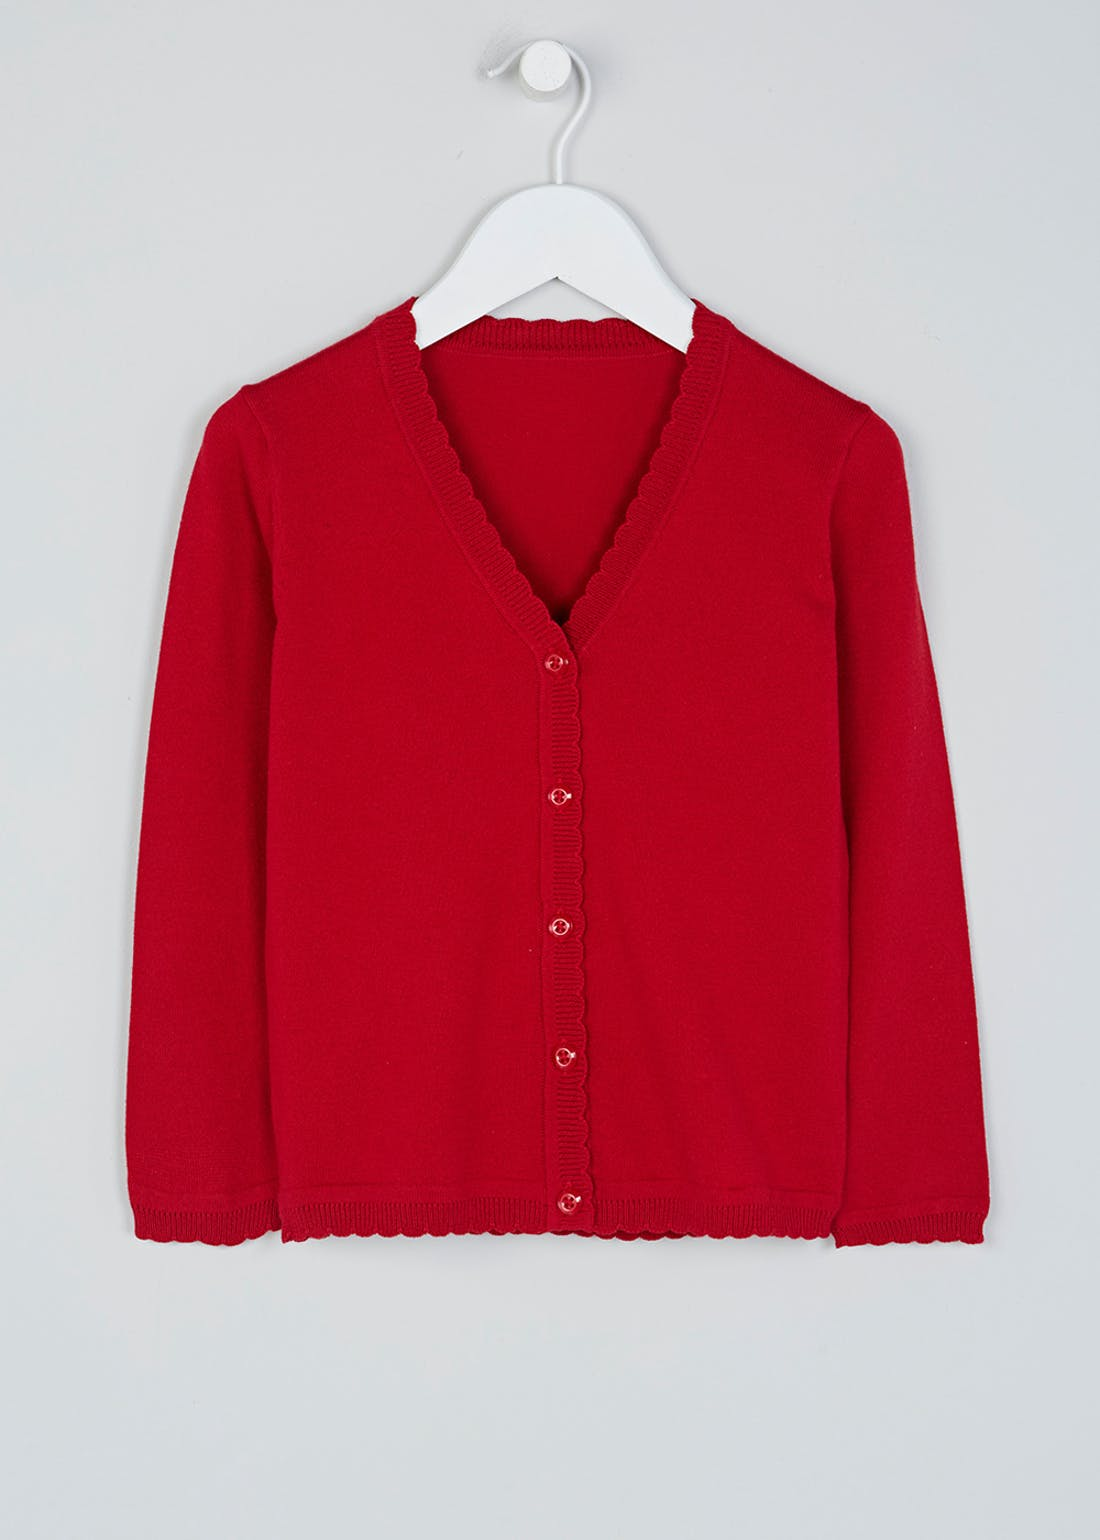 Girls Red Scallop Edge School Cardigan (3-13yrs)